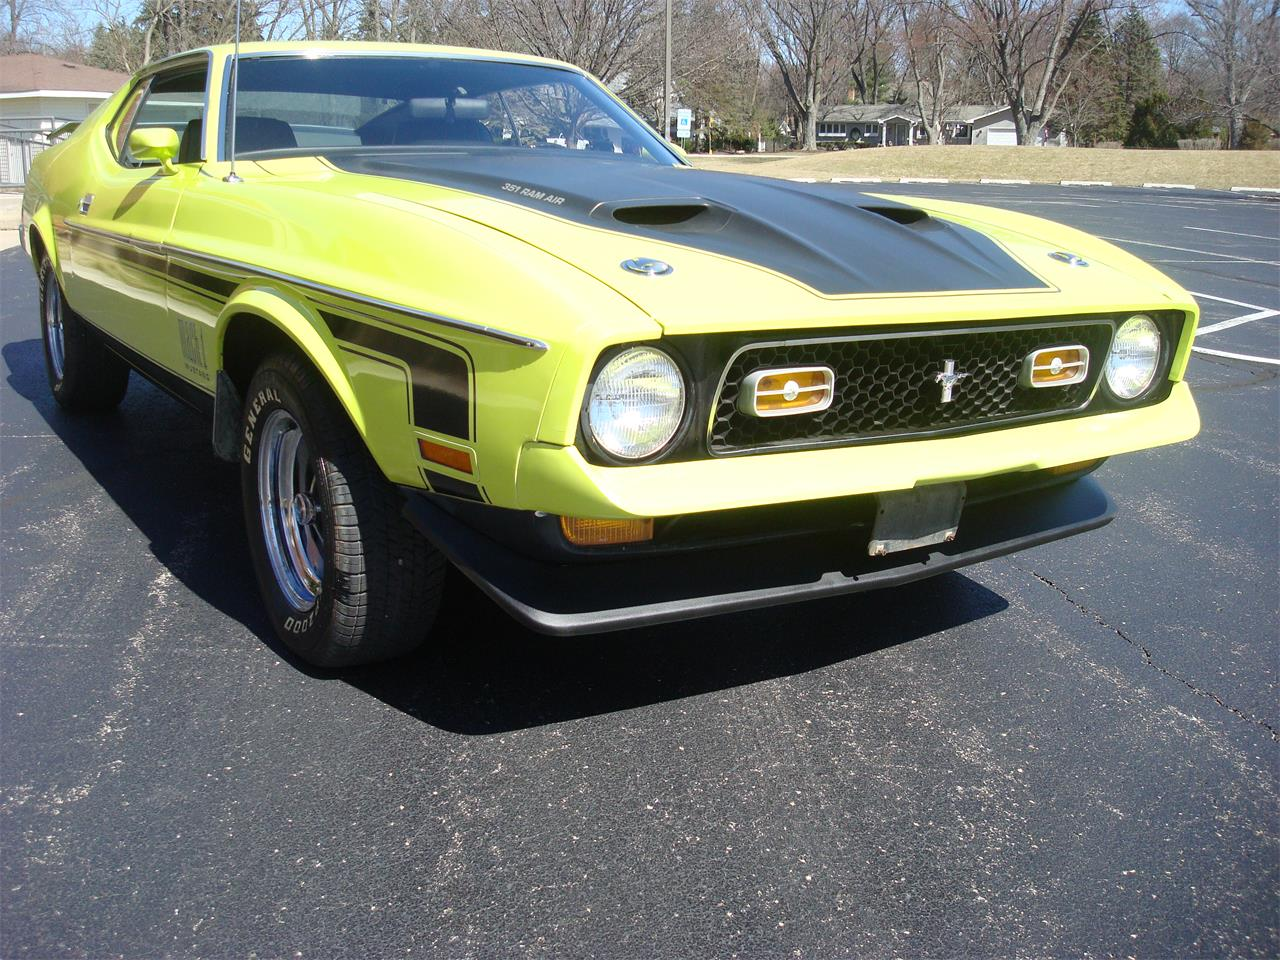 Large Picture of Classic '72 Mustang located in Illinois - $28,500.00 Offered by Naperville Auto Haus - NQ5T